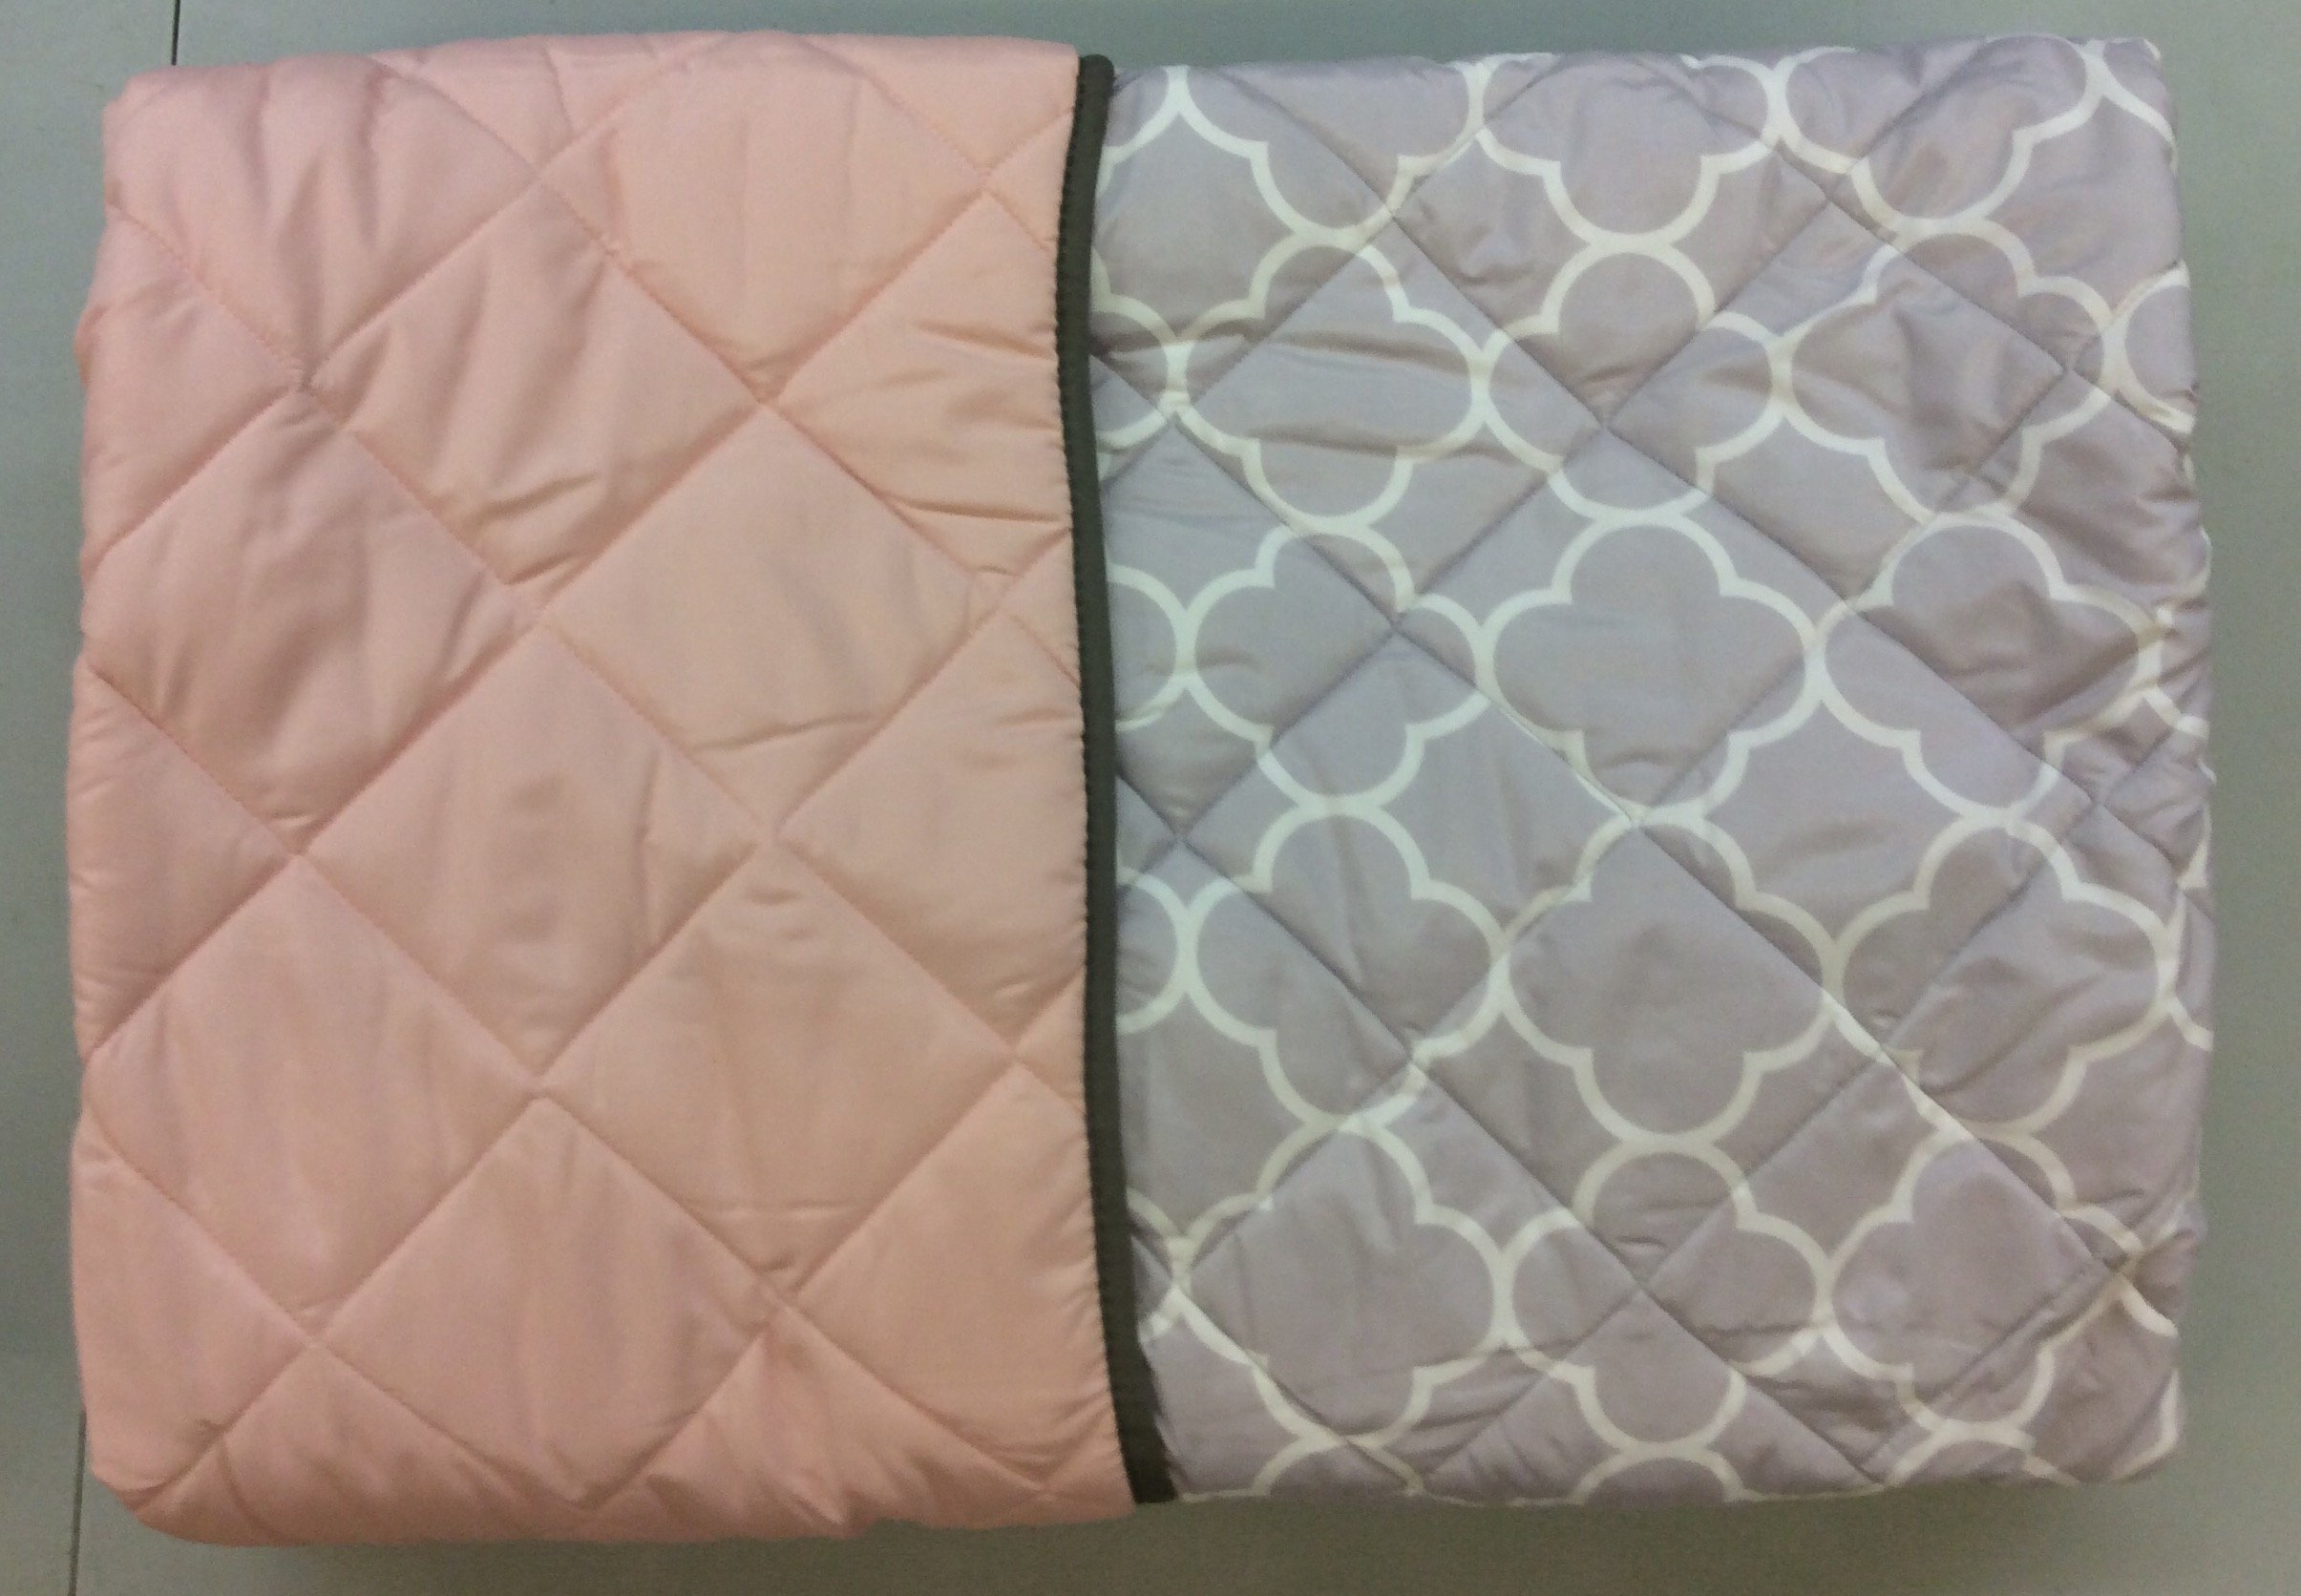 NEW FREE GRAY/PINK TEENS GIRLS REVERSIBLE COMFORTER SET 3 PCS TWIN SIZE by JORGE'S HOME FASHION (Image #3)